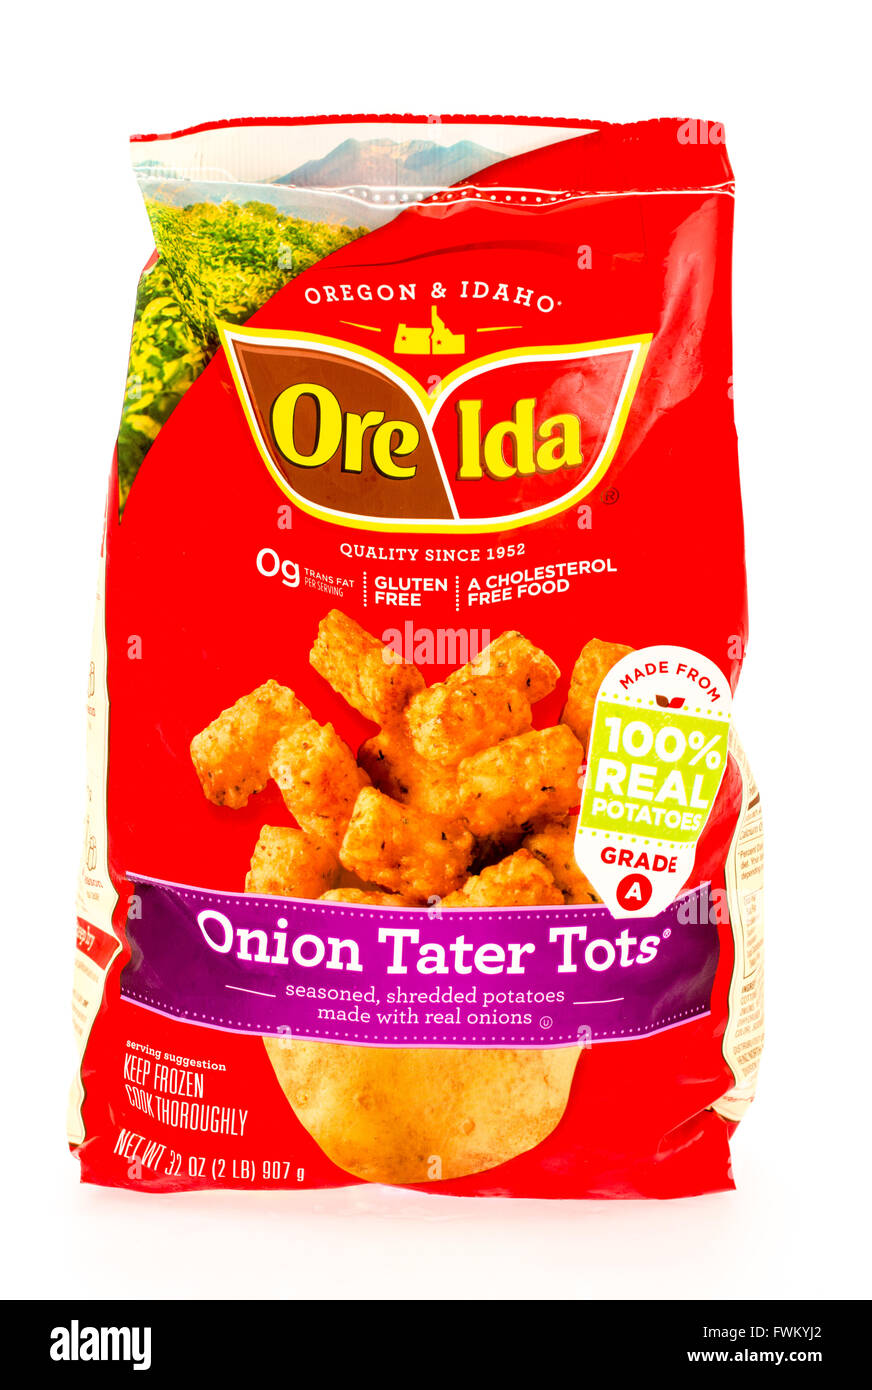 Winneconne, WI - 29 August 2015: Bag of Ore Ida onion tater tots, made from 100% potatoes. - Stock Image